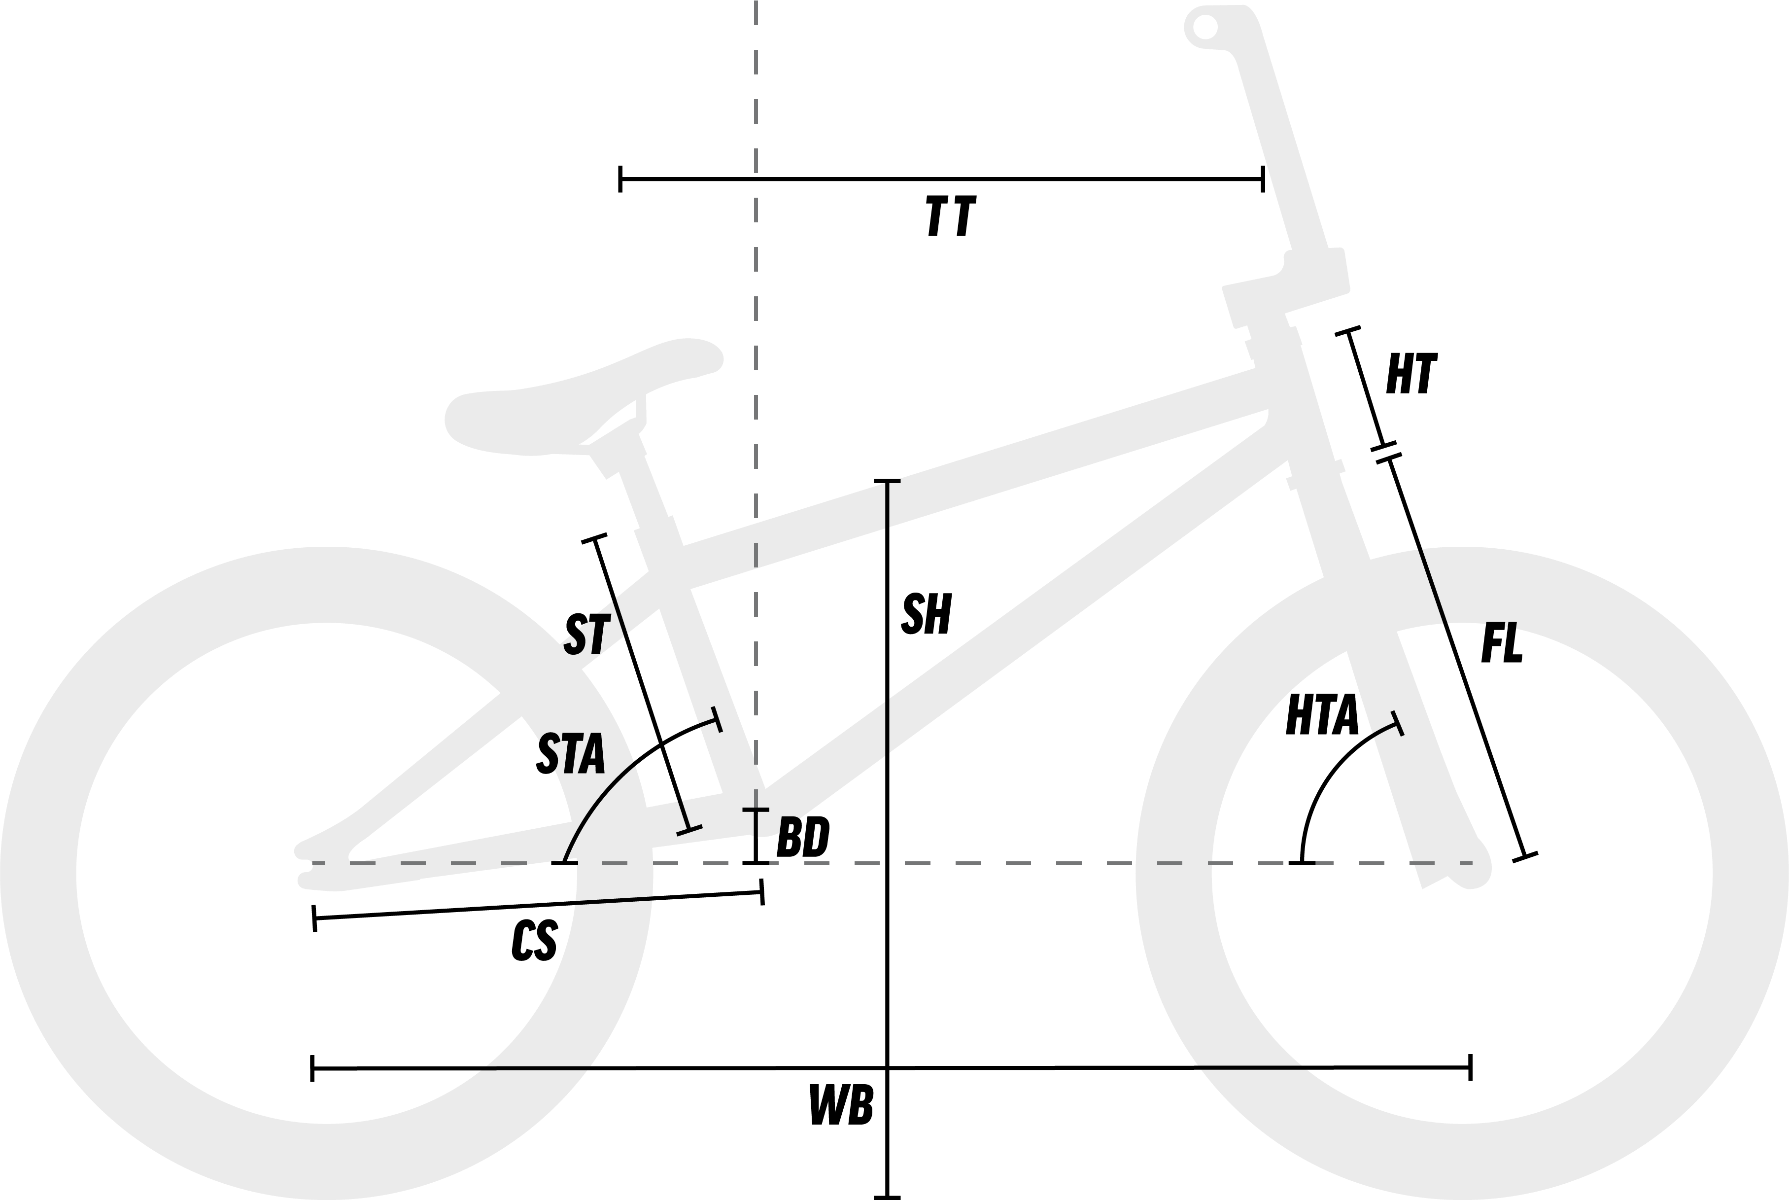 BMX Bike Geometry Diagram